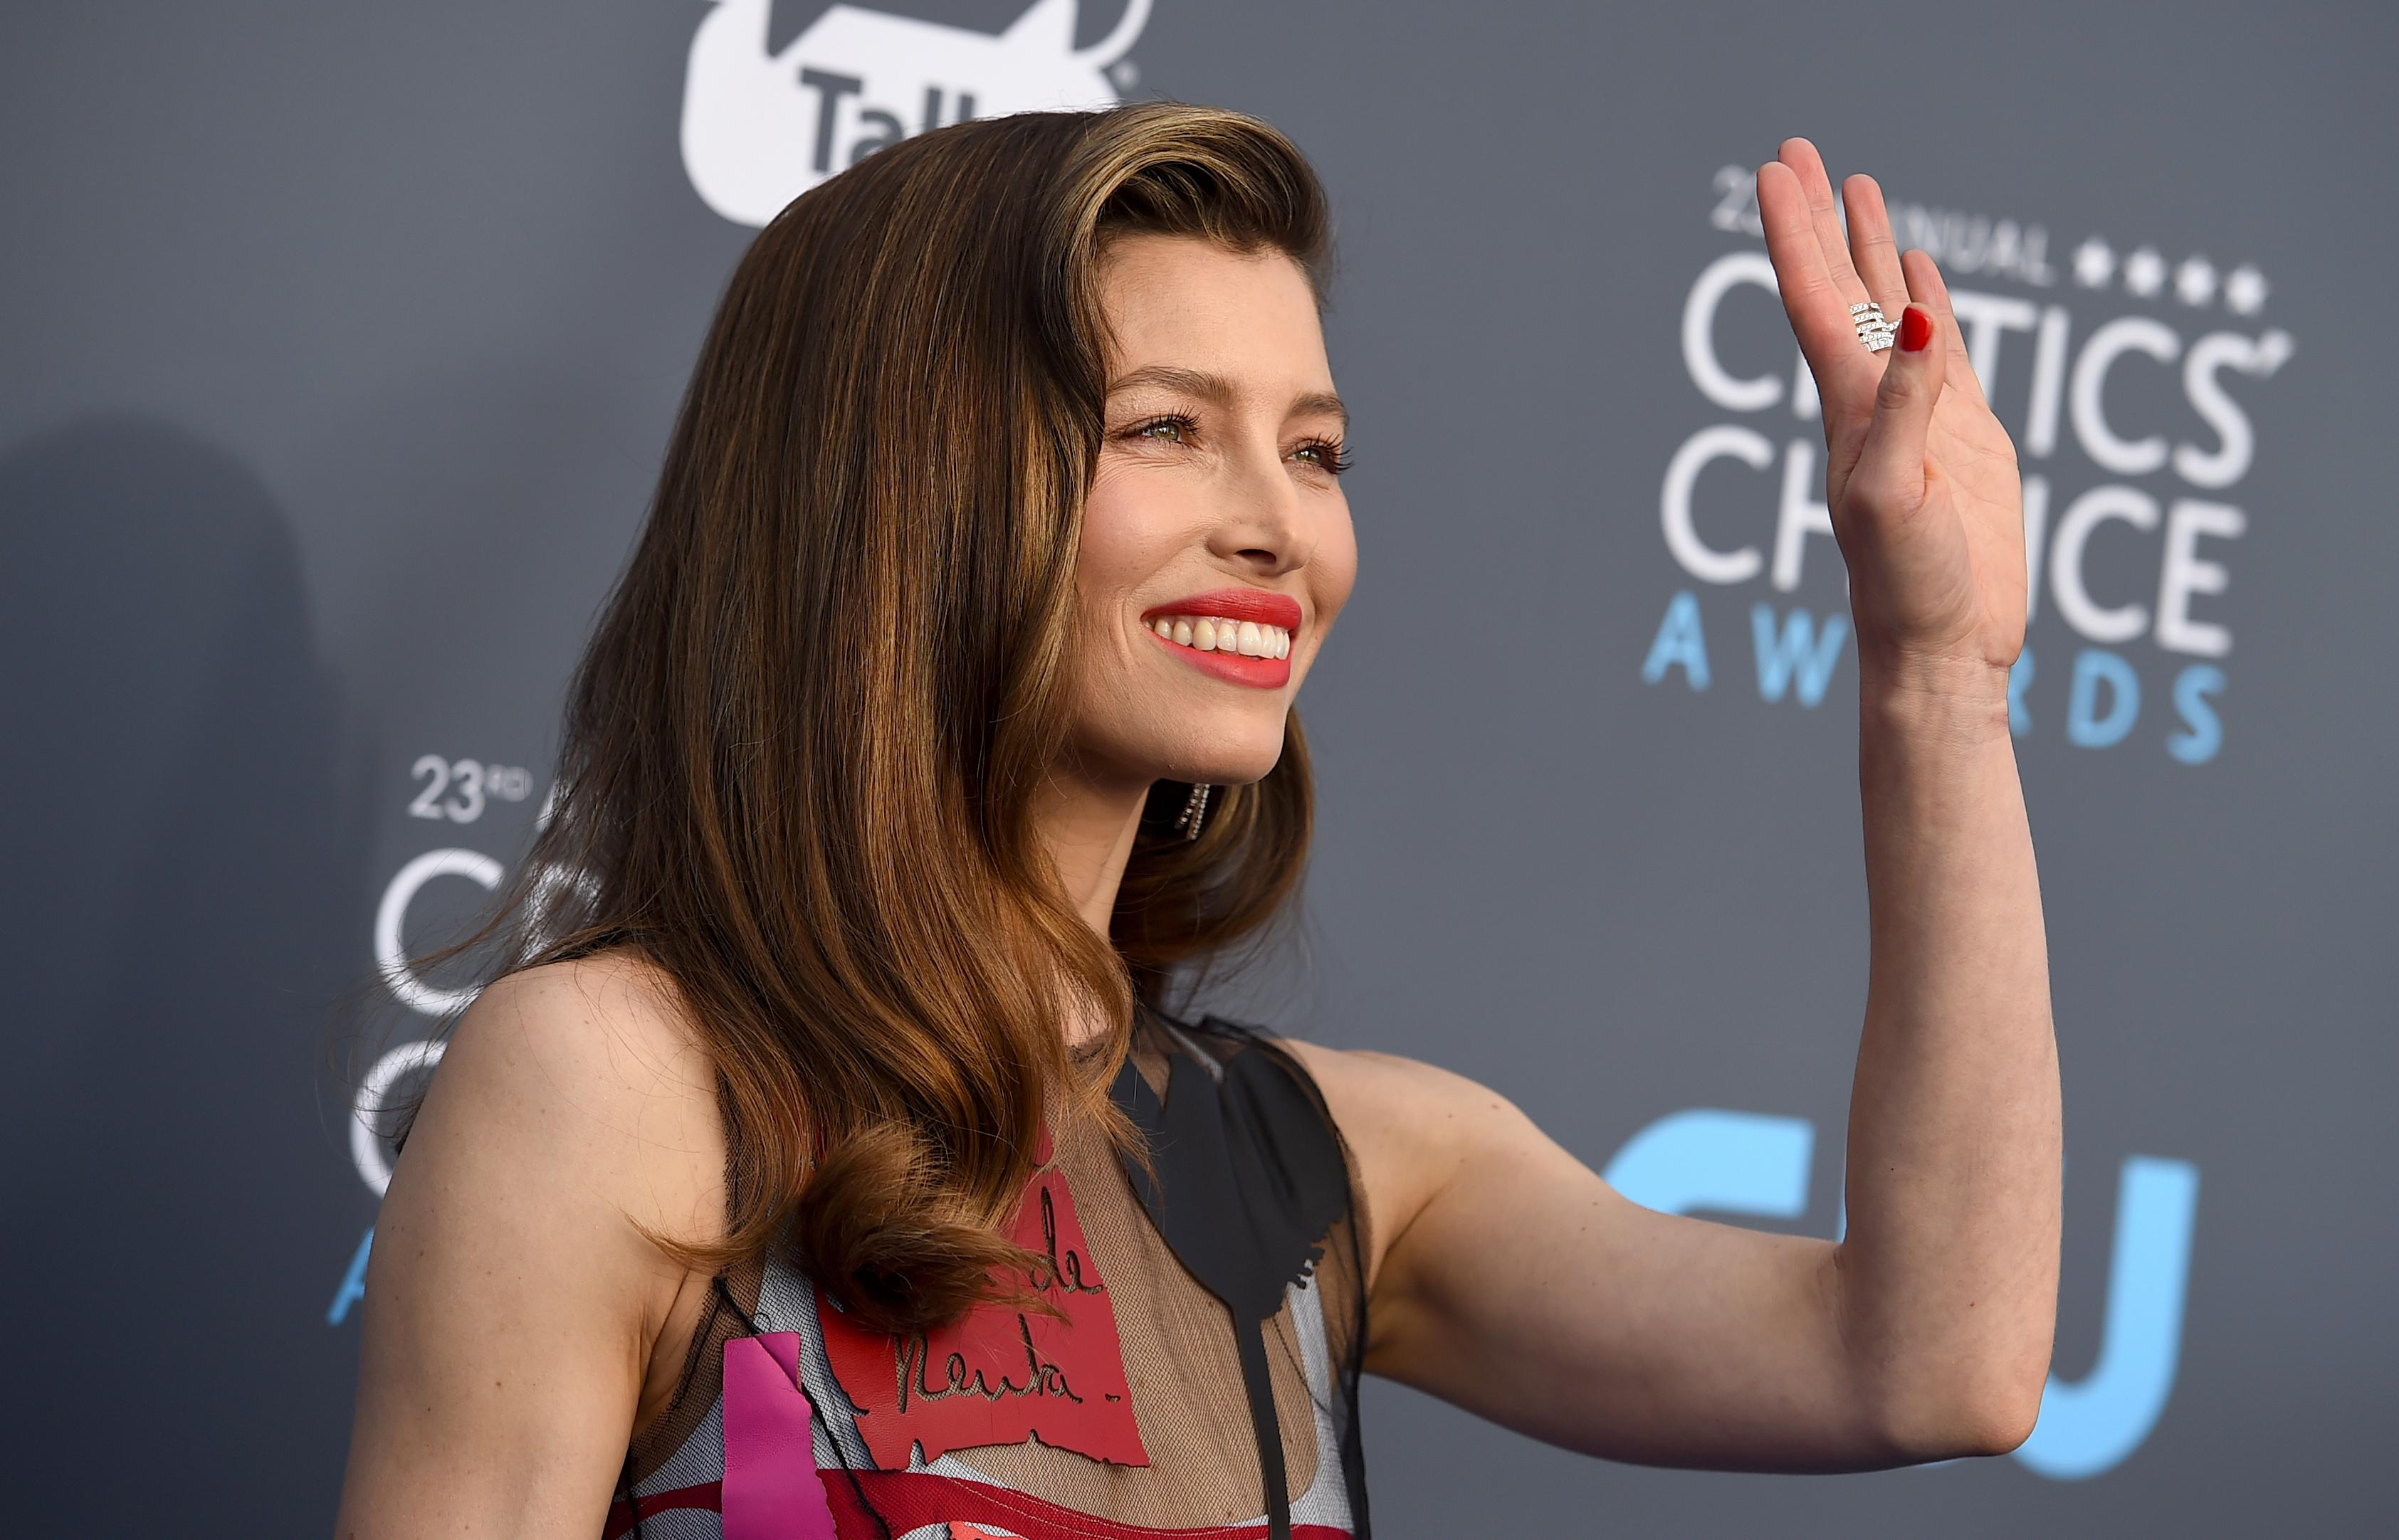 Jessica Biel arrives at the 23rd annual Critics' Choice Awards at the Barker Hangar on Thursday, Jan. 11, 2018, in Santa Monica, Calif. (Photo by Jordan Strauss/Invision/AP)